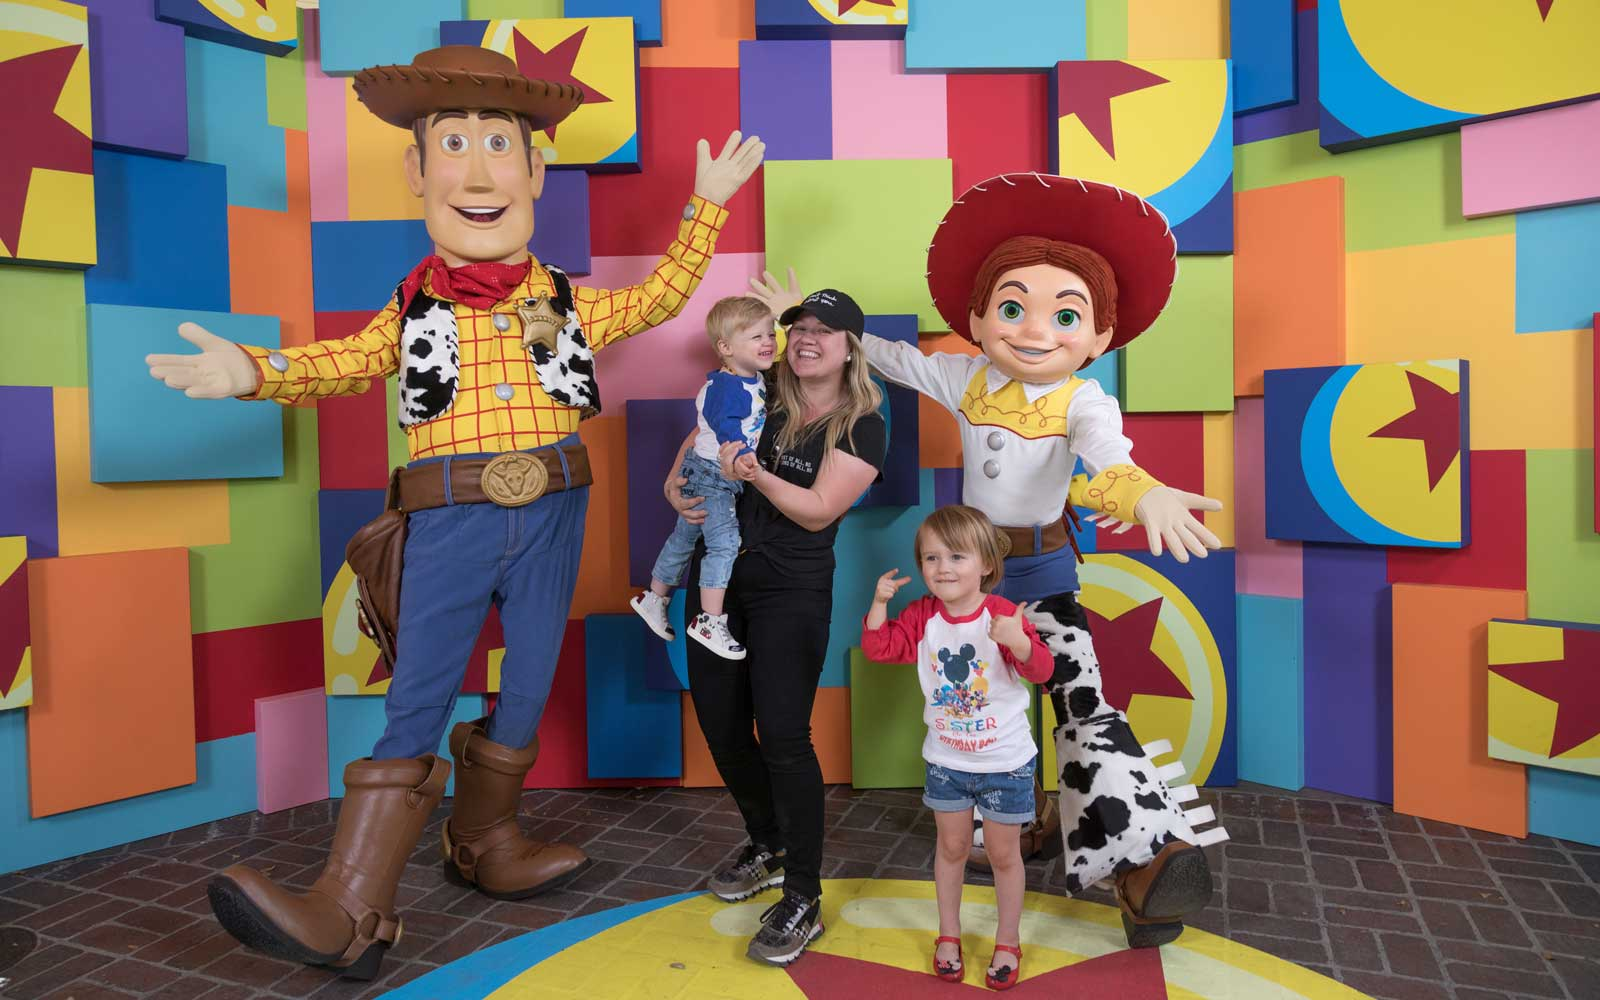 Pixar Fest Just Started at Disneyland and Kelly Clarkson and Her Kids Were Some of the First to See It